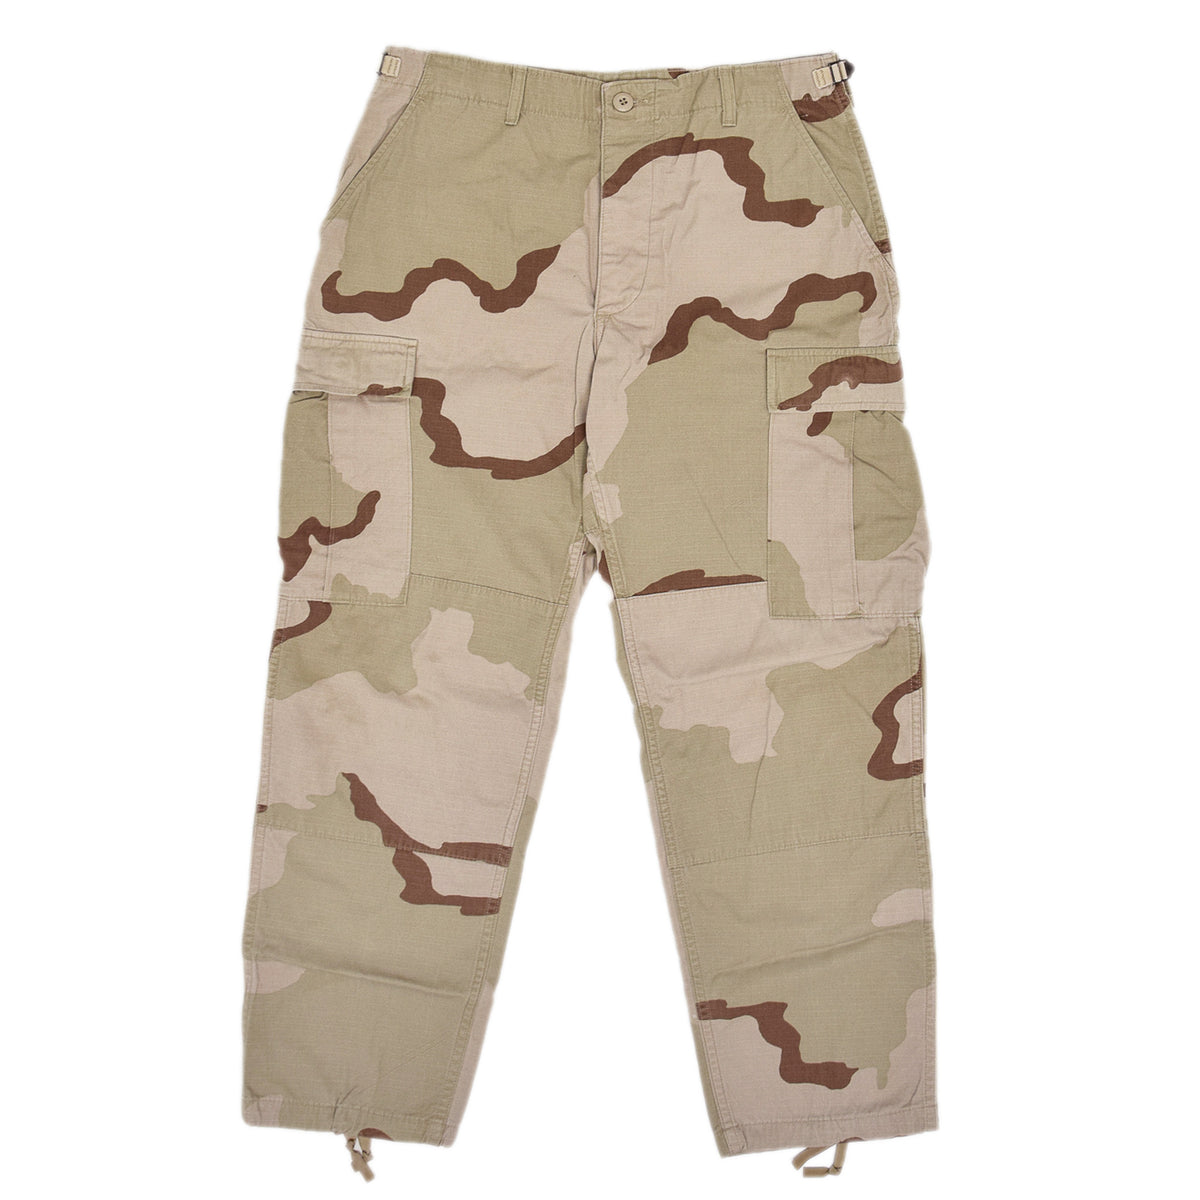 Vintage US Army Desert Camo Ripstop Cargo Combat Field Trousers M Short front